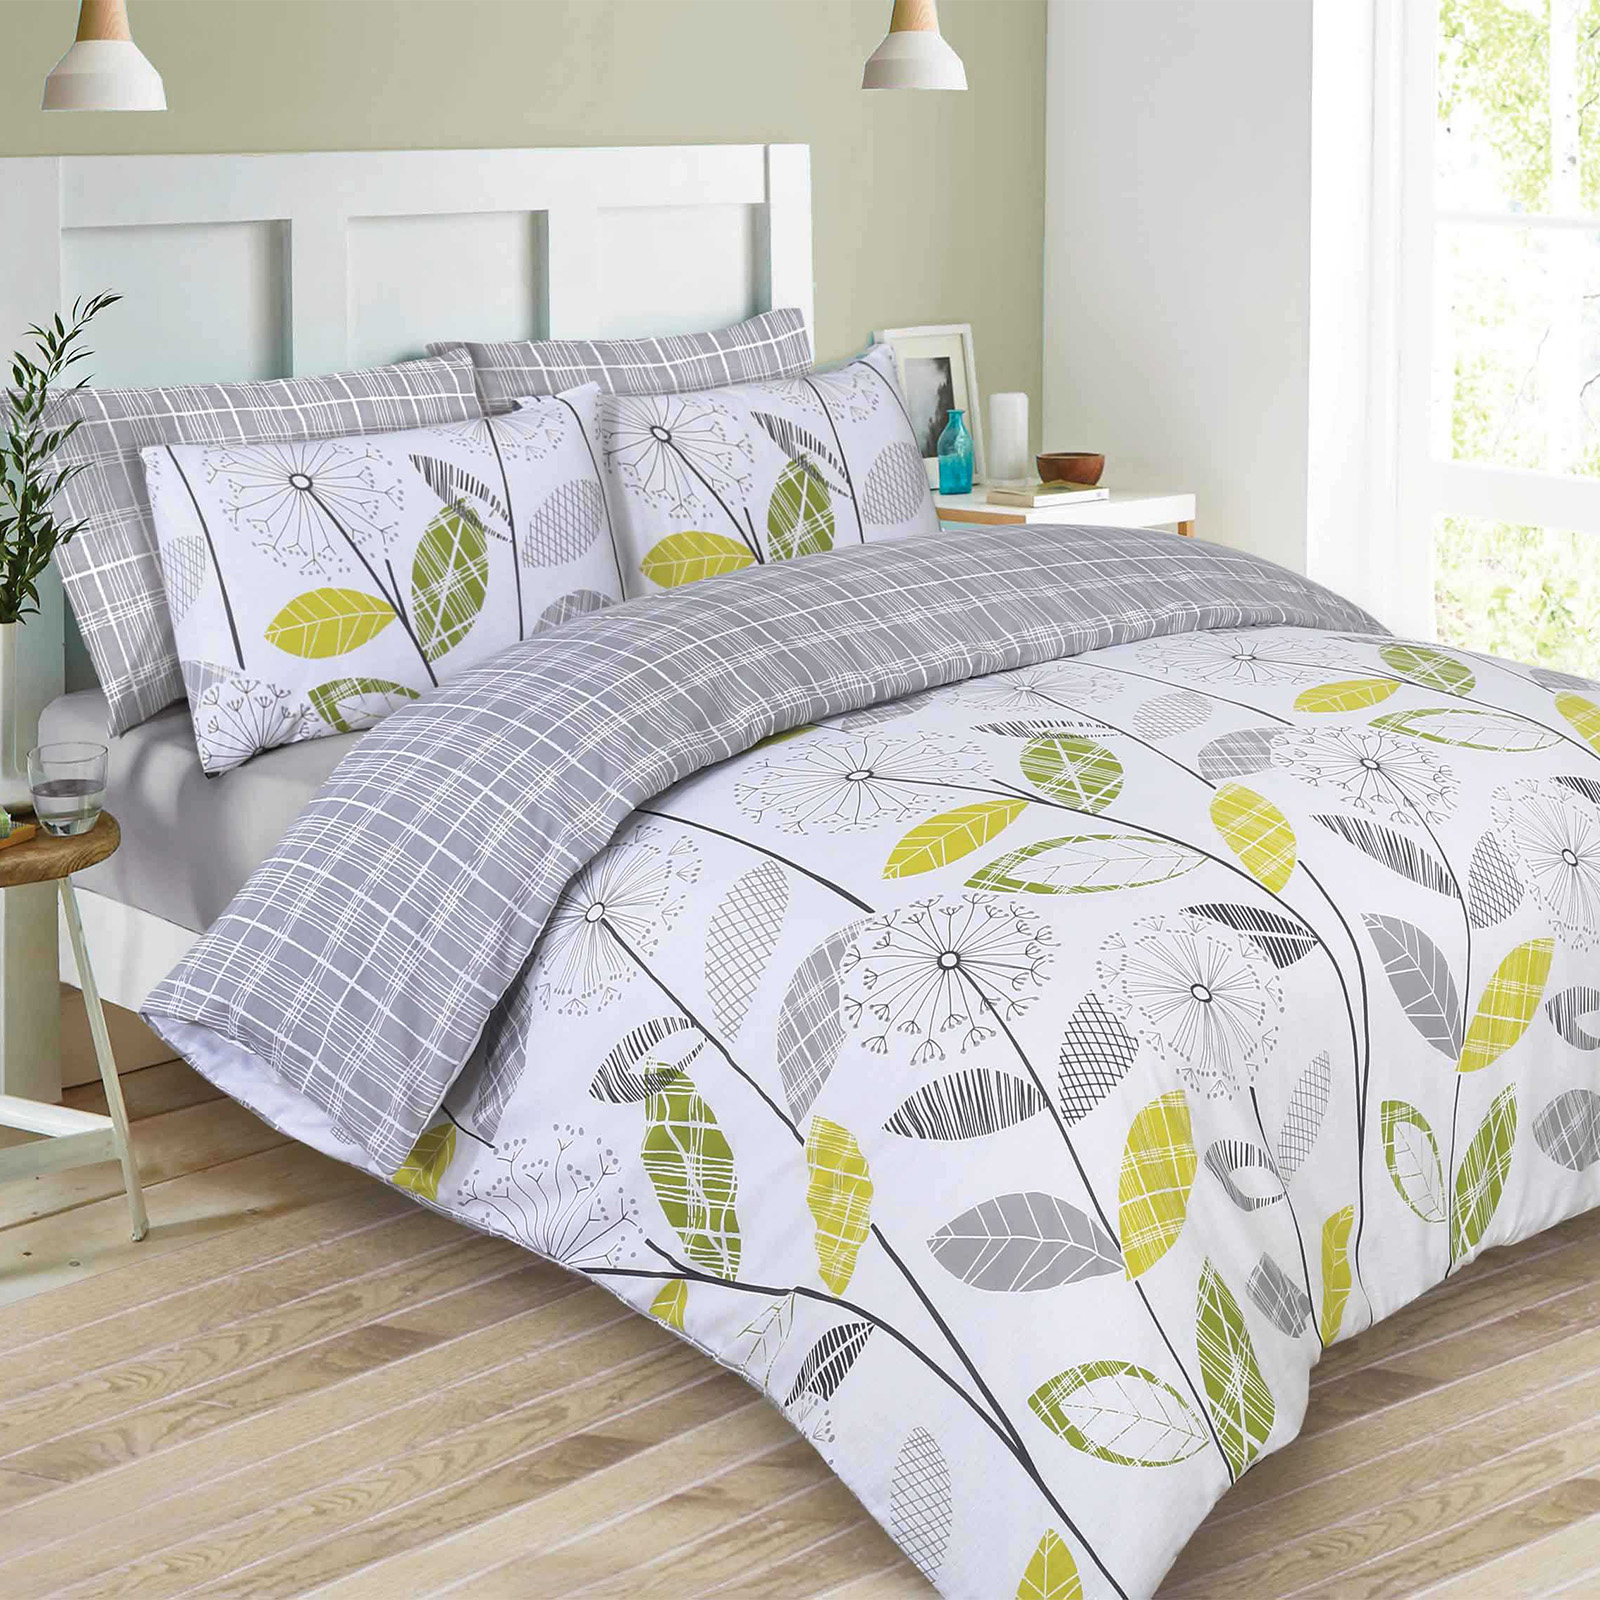 Dreamscene-Duvet-Cover-With-Pillowcase-Polycotton-Bedding-Set-Single-Double-King